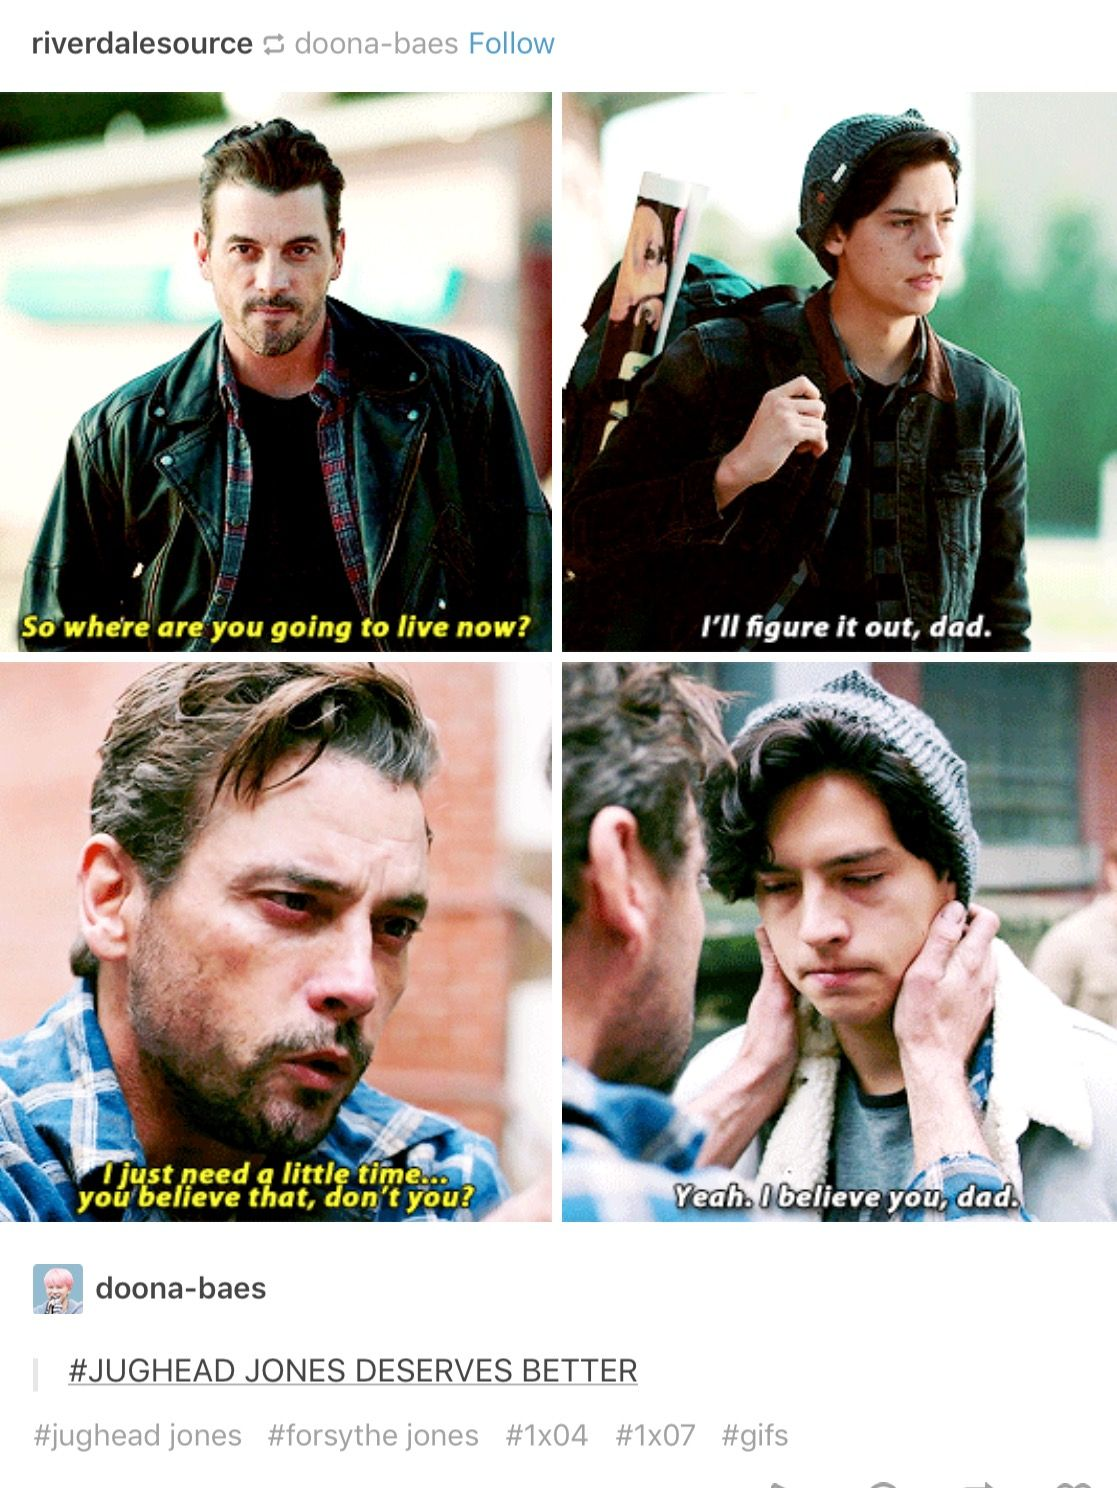 Jughead deserves so much better than that for a father ...